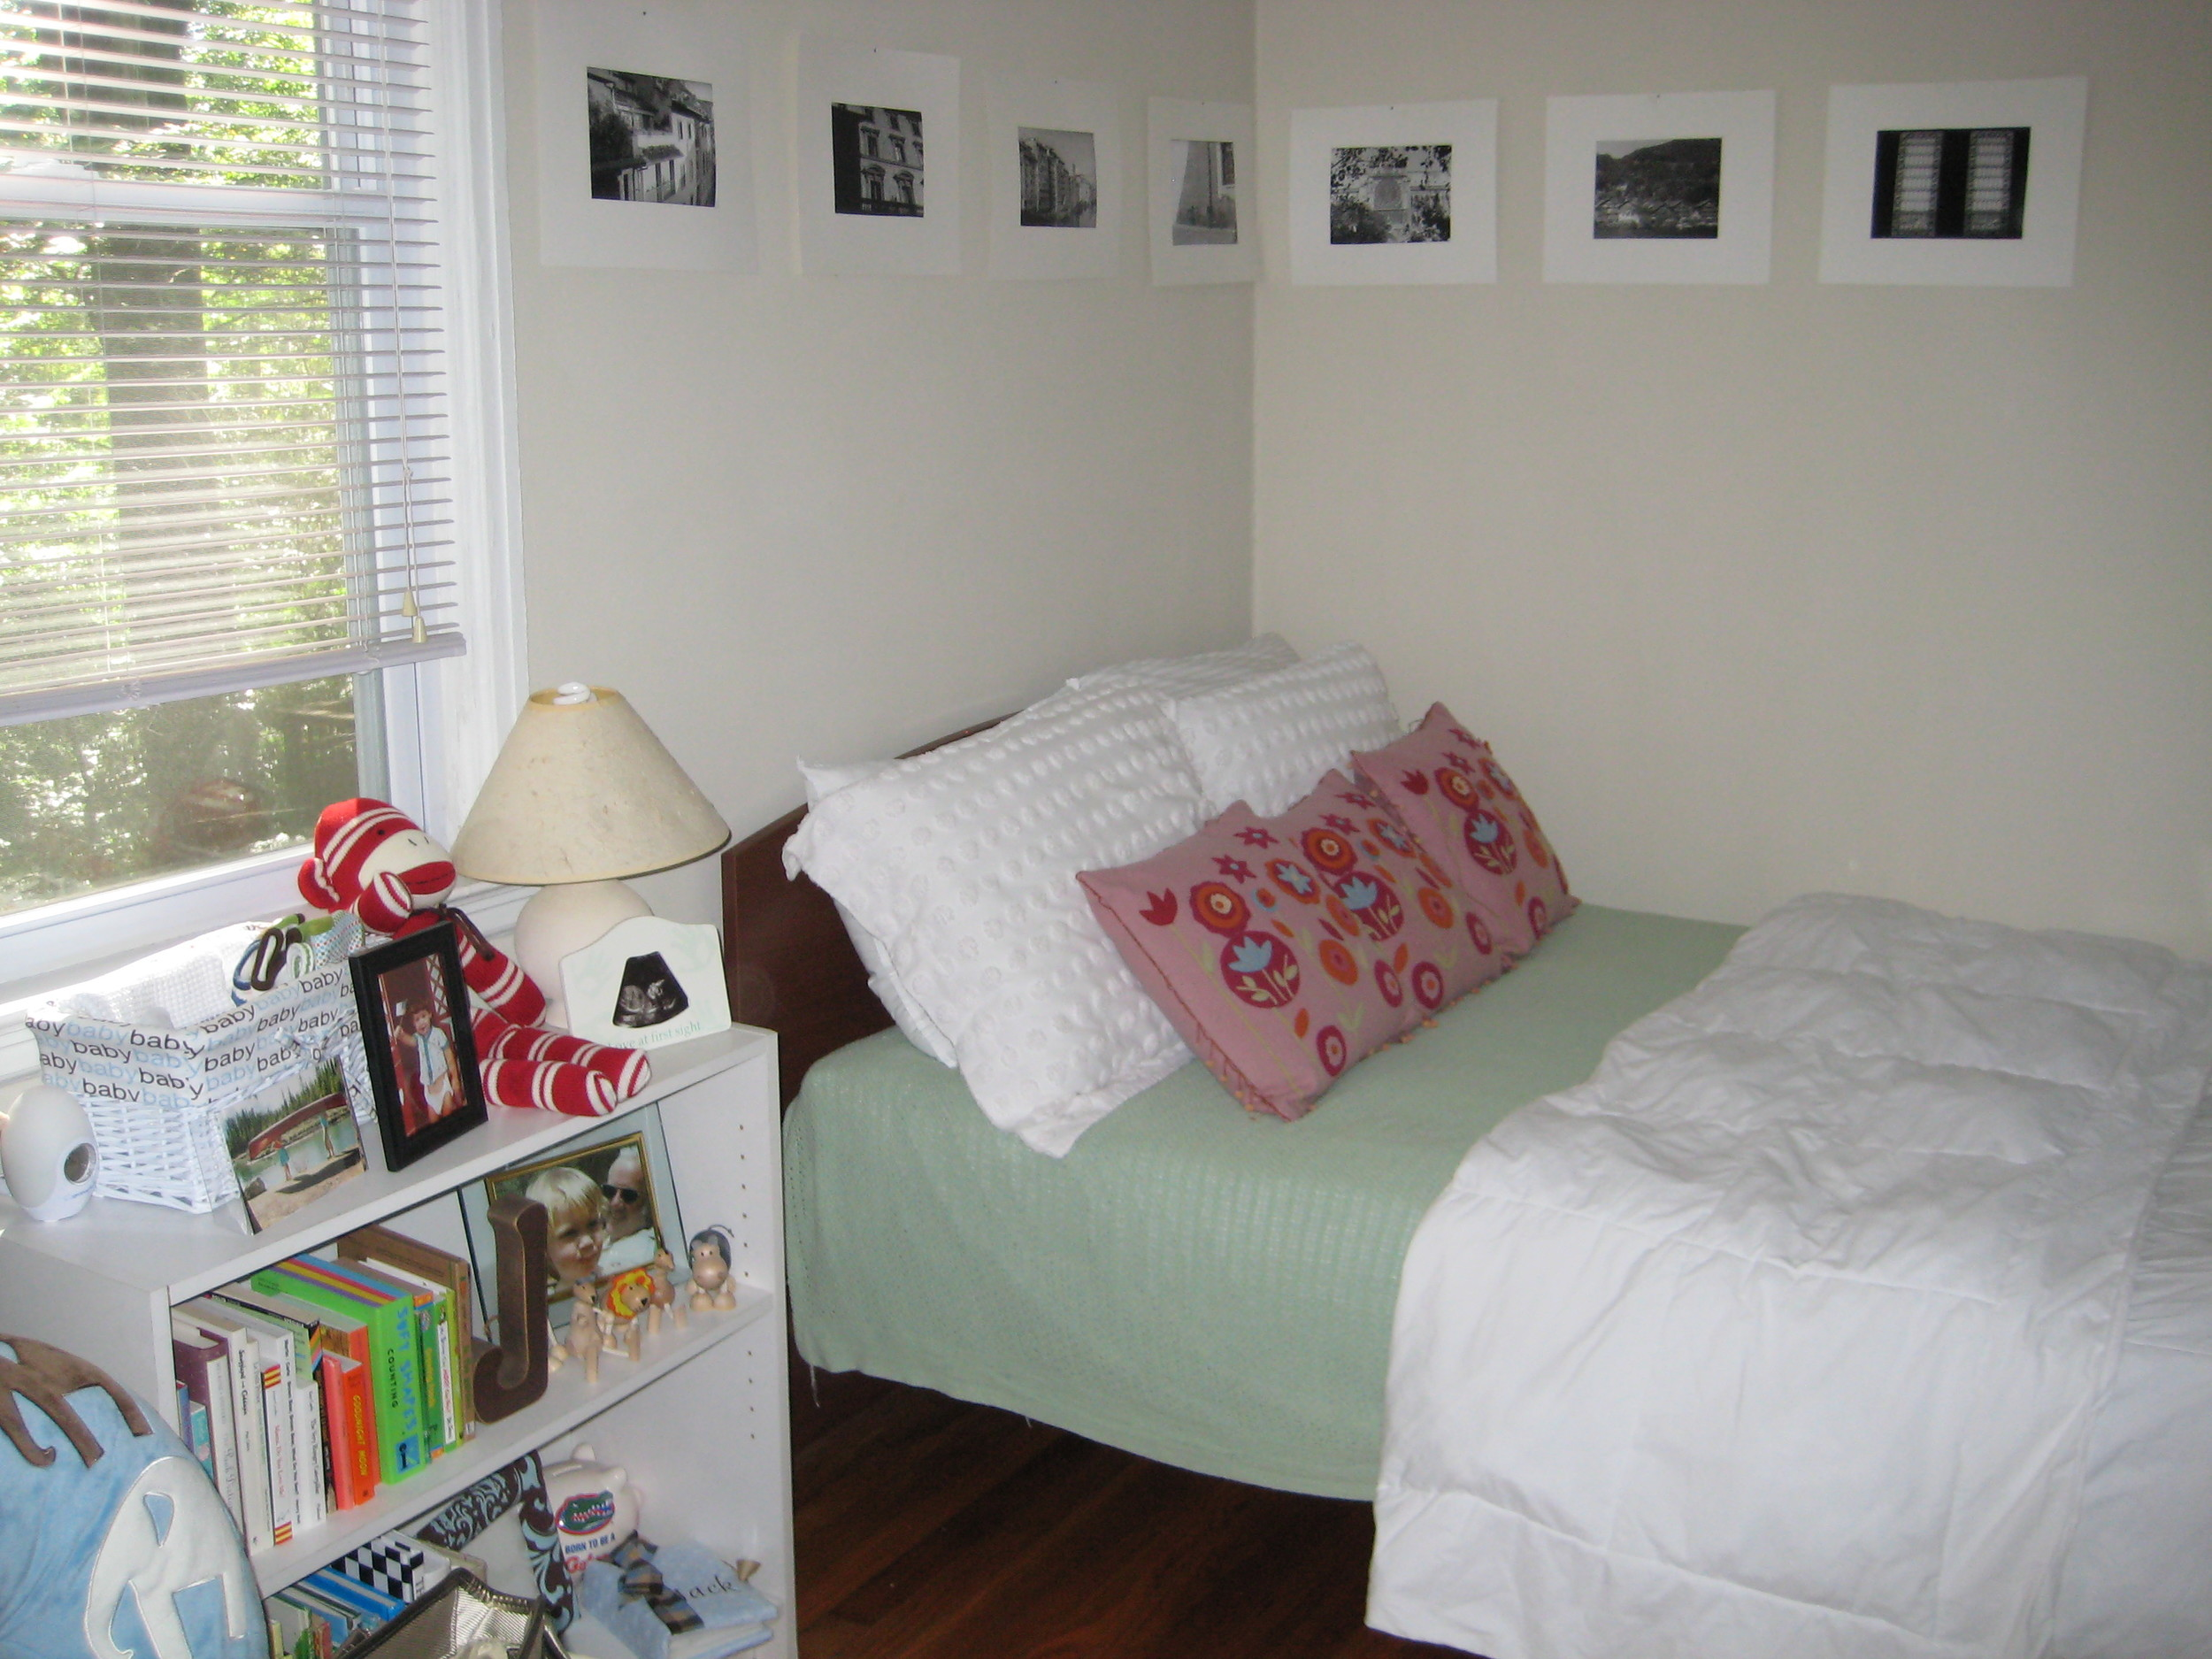 the book shelf and guest bed